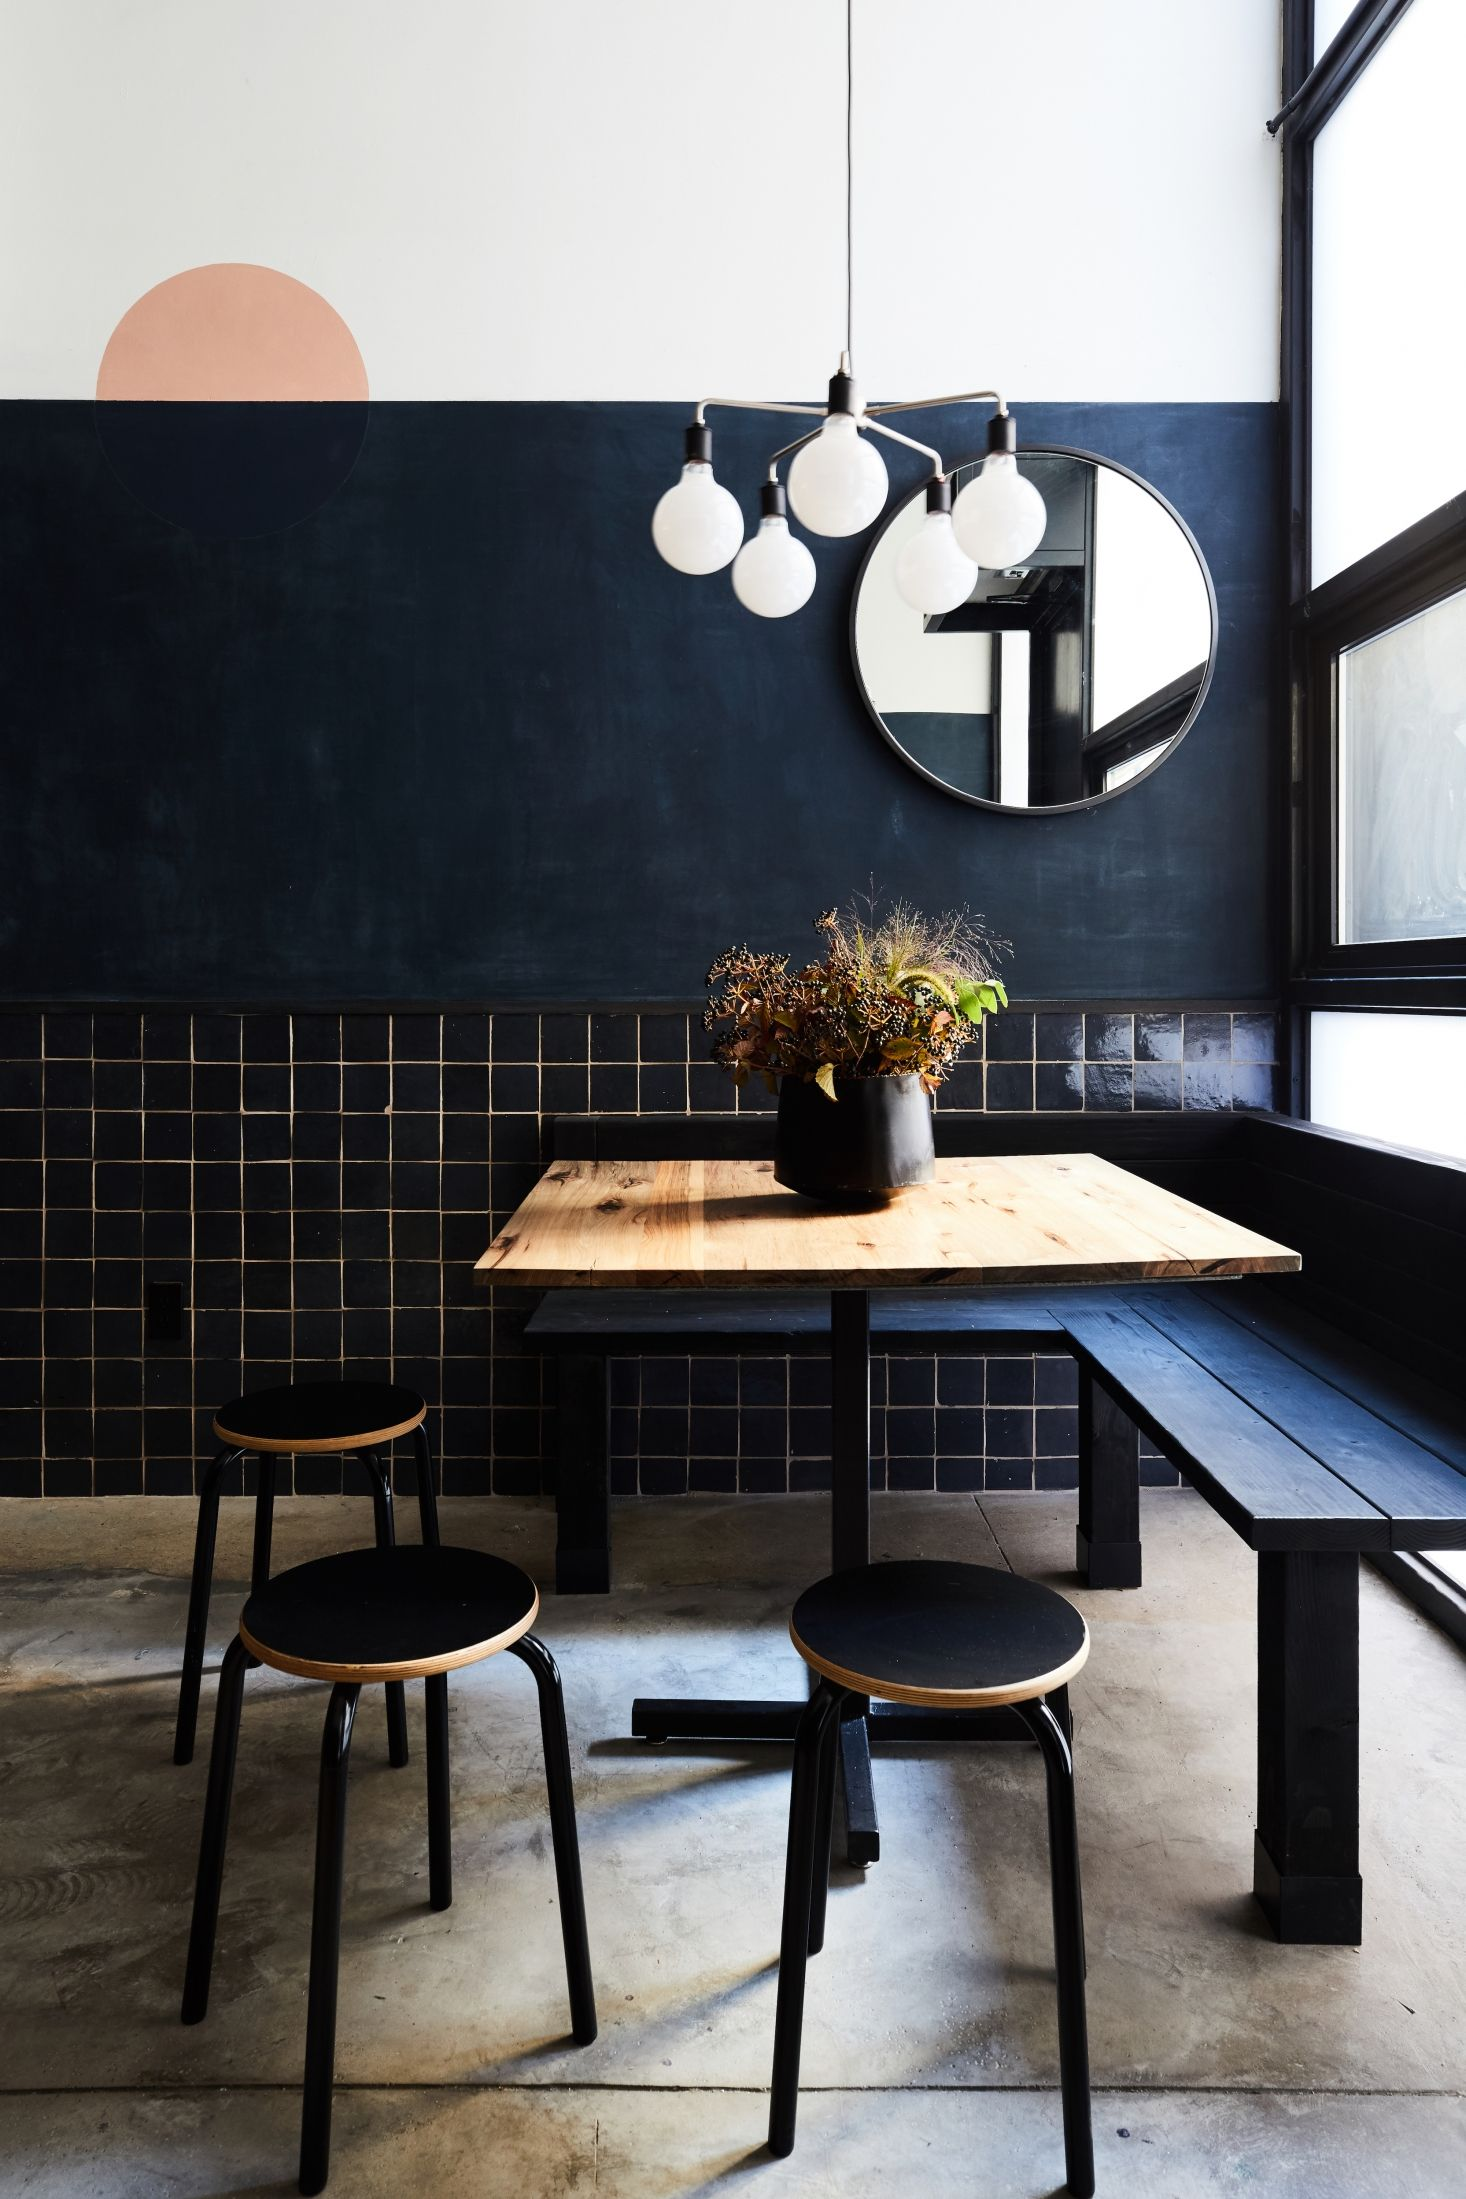 Bistro Esszimmer Am See 9 Design Ideas For Small Dark Rooms From Tonchin New York